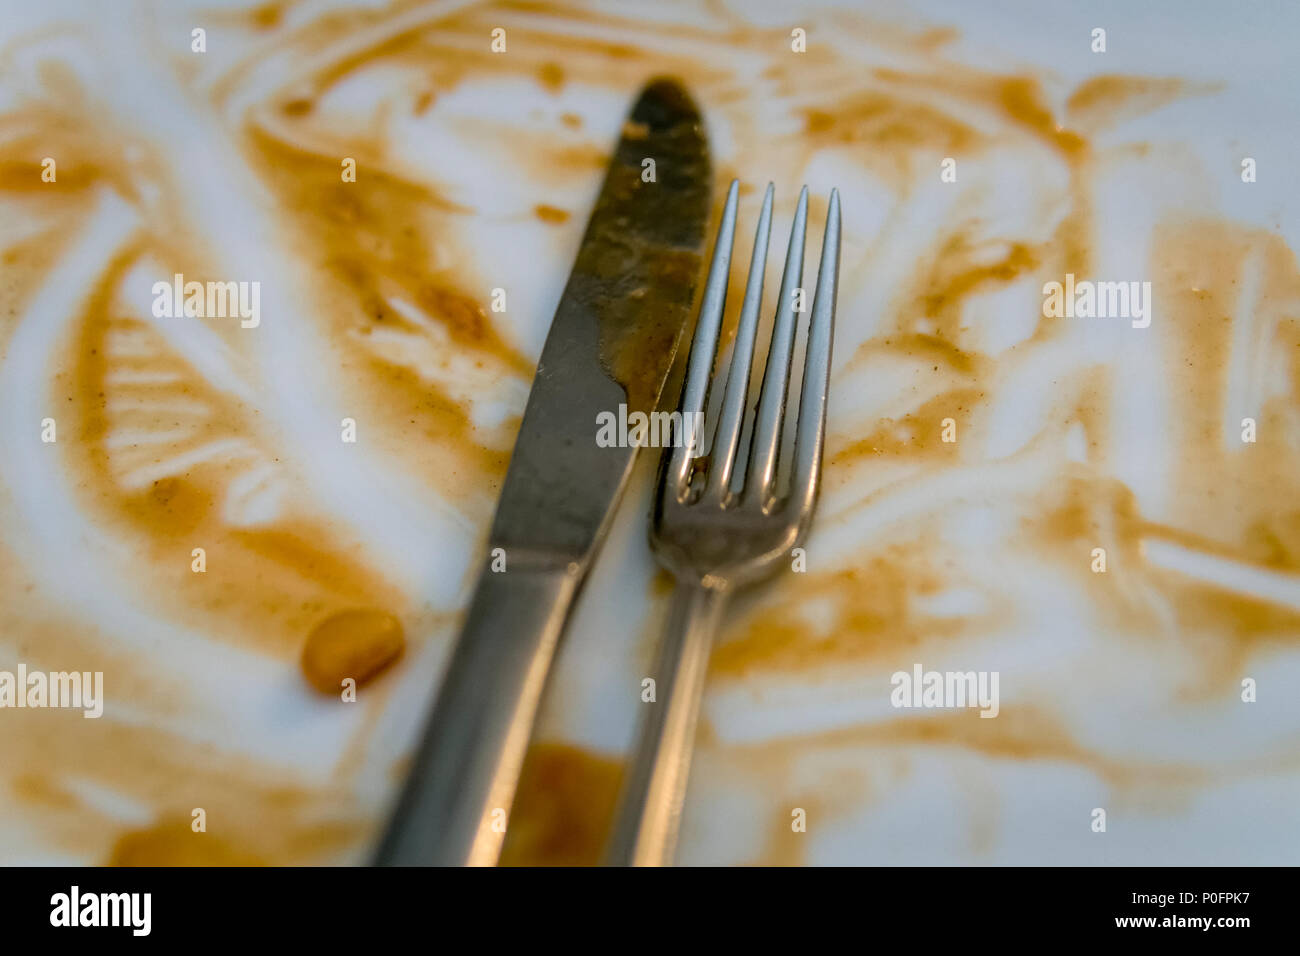 Knife and Fork on plate with leftover food - Stock Image